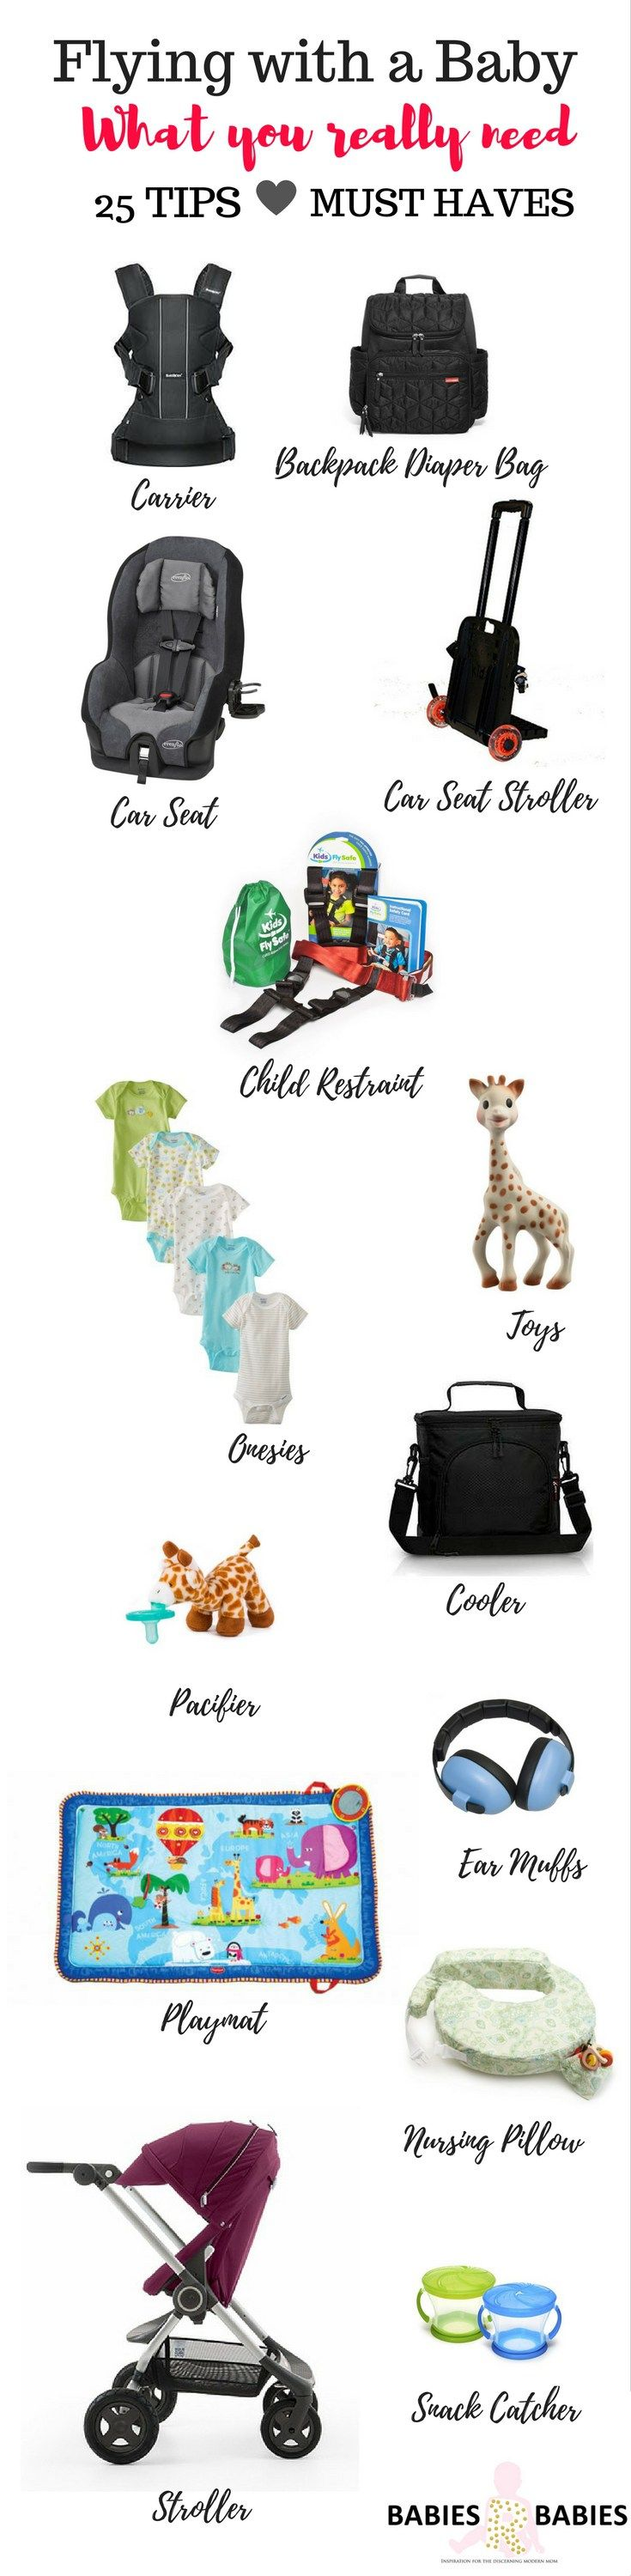 FLYING WITH A BABY.TIPS FOR FLYING WITH BABY AND MUST-HAVES FOR THE FLIGHT